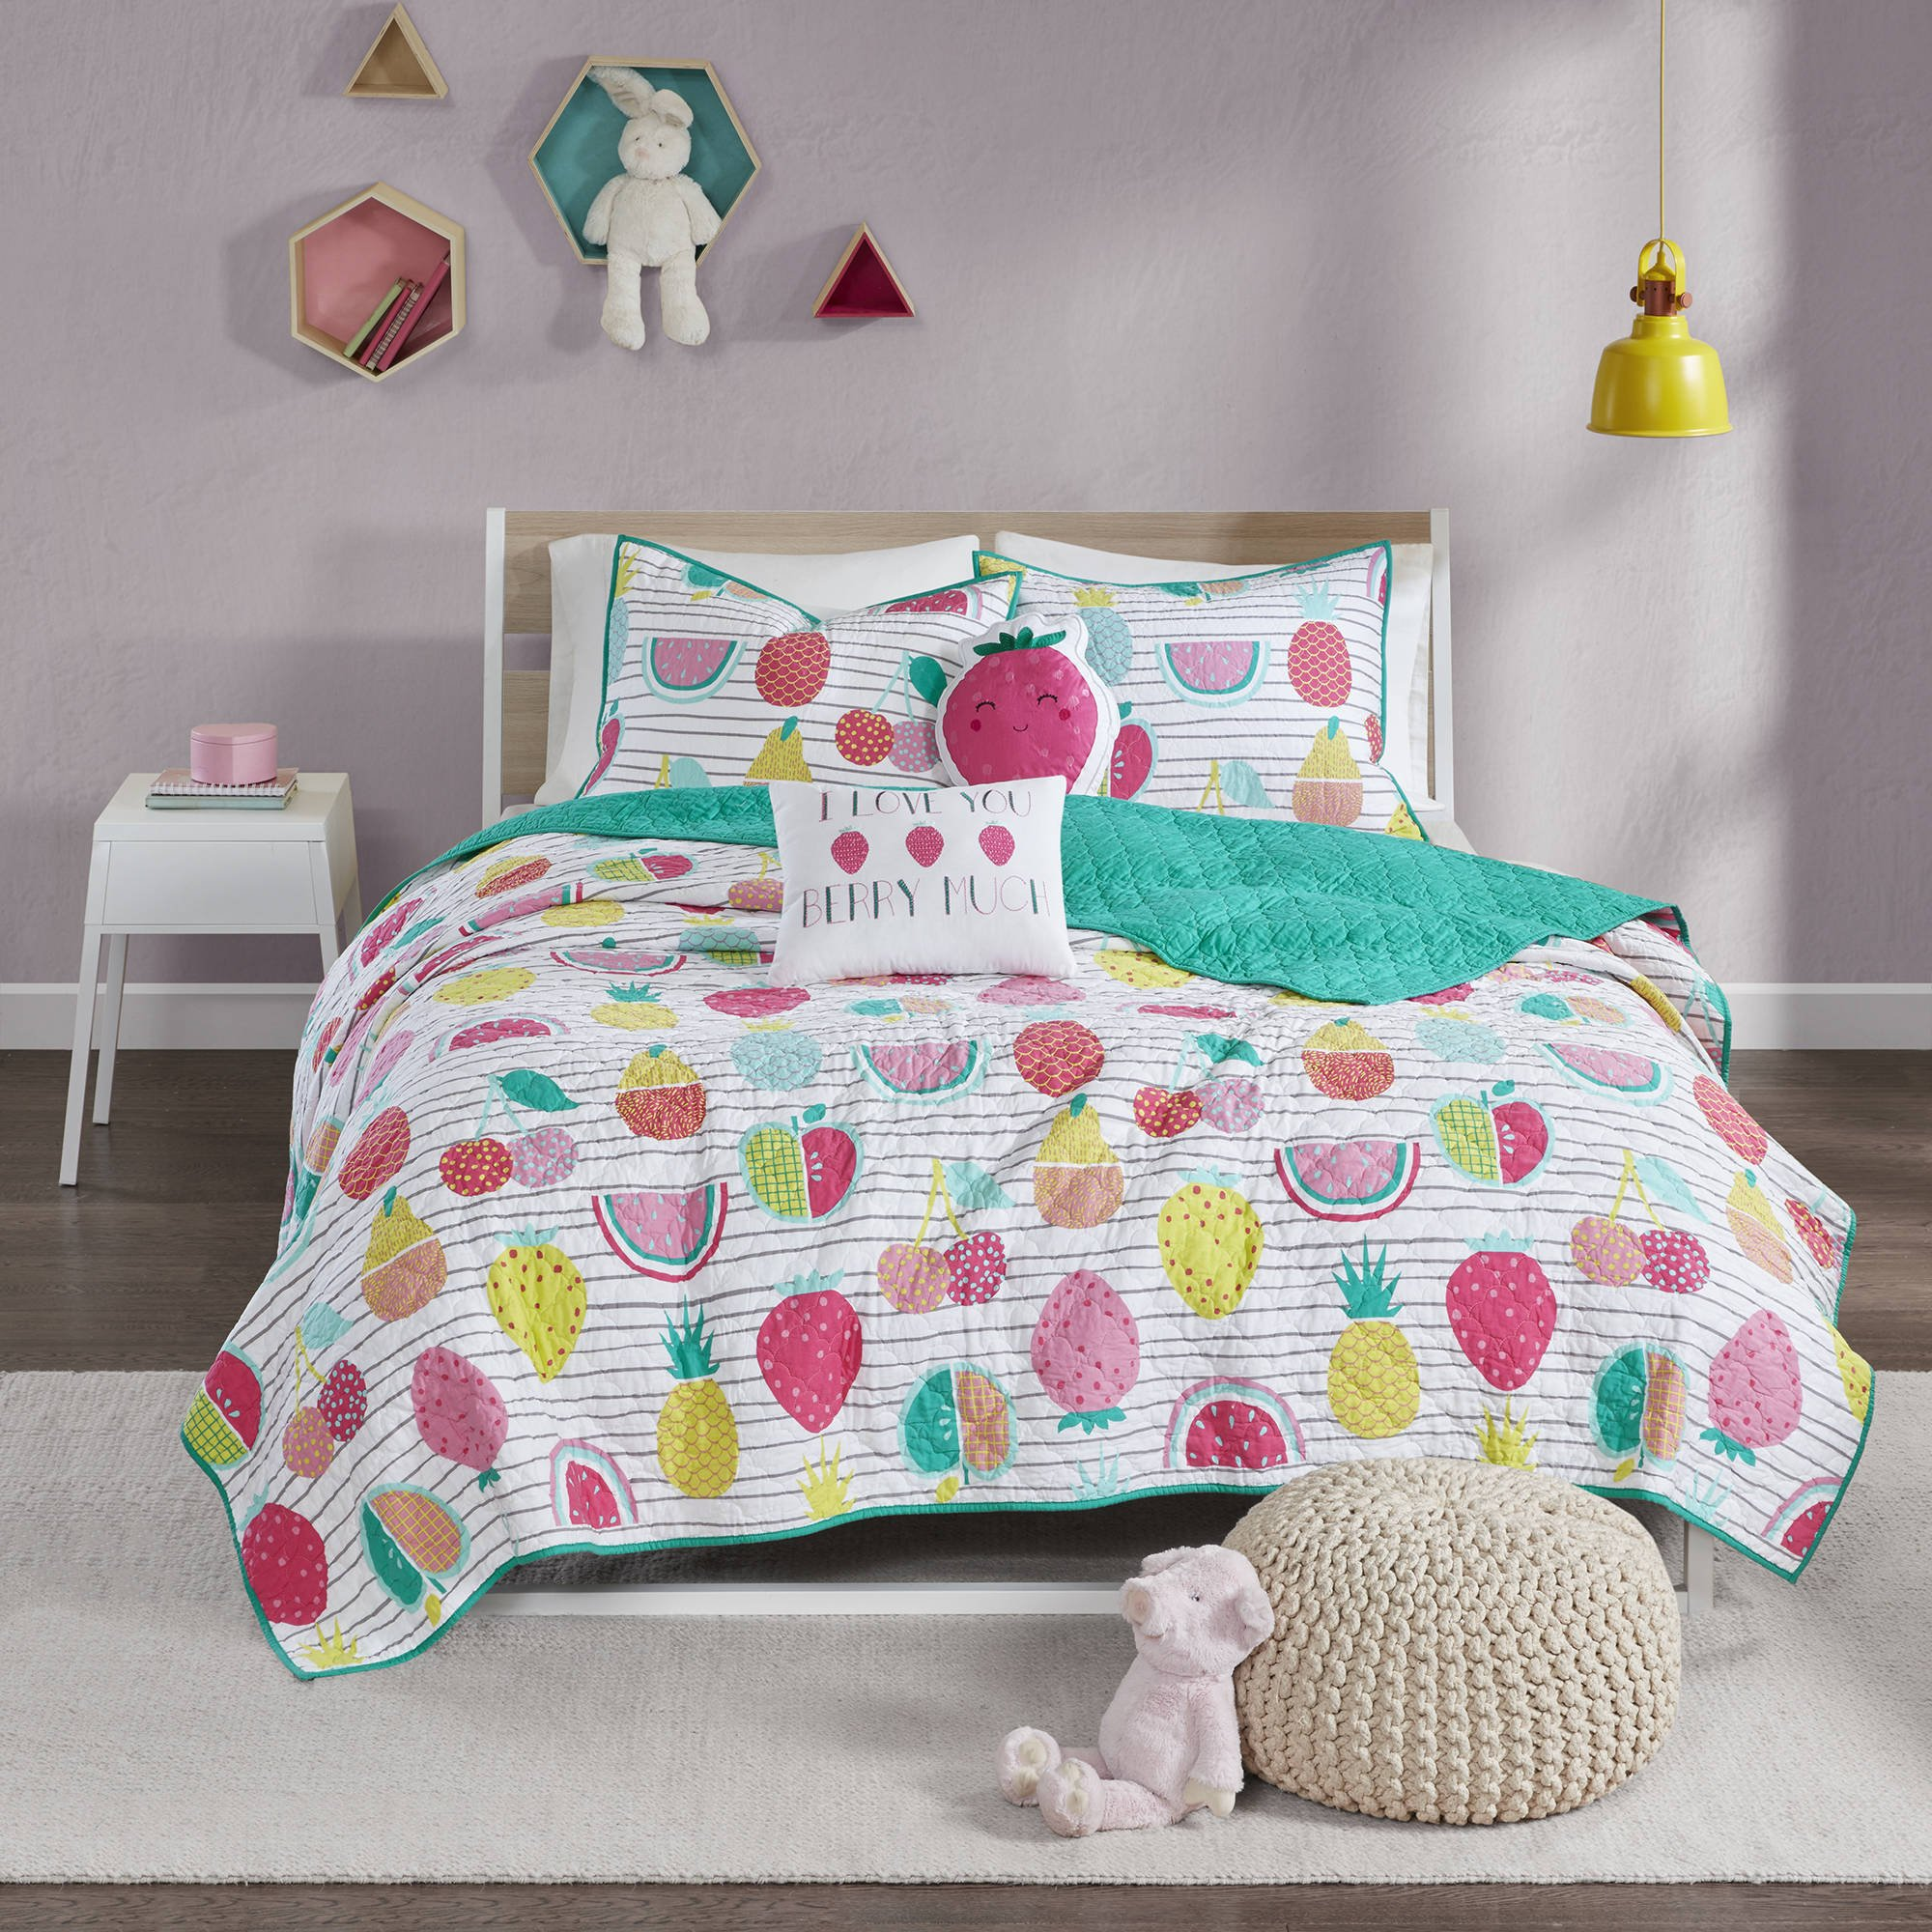 4 Piece Red Yellow Kids Fruit Twin/Twin XL Quilt Set, Pink Blue Pineapple Strawberry Watermelon Pattern Bedding, Horizontal Stripes Berries Reversible Solid Color, Fun Cute Novelty, Cotton